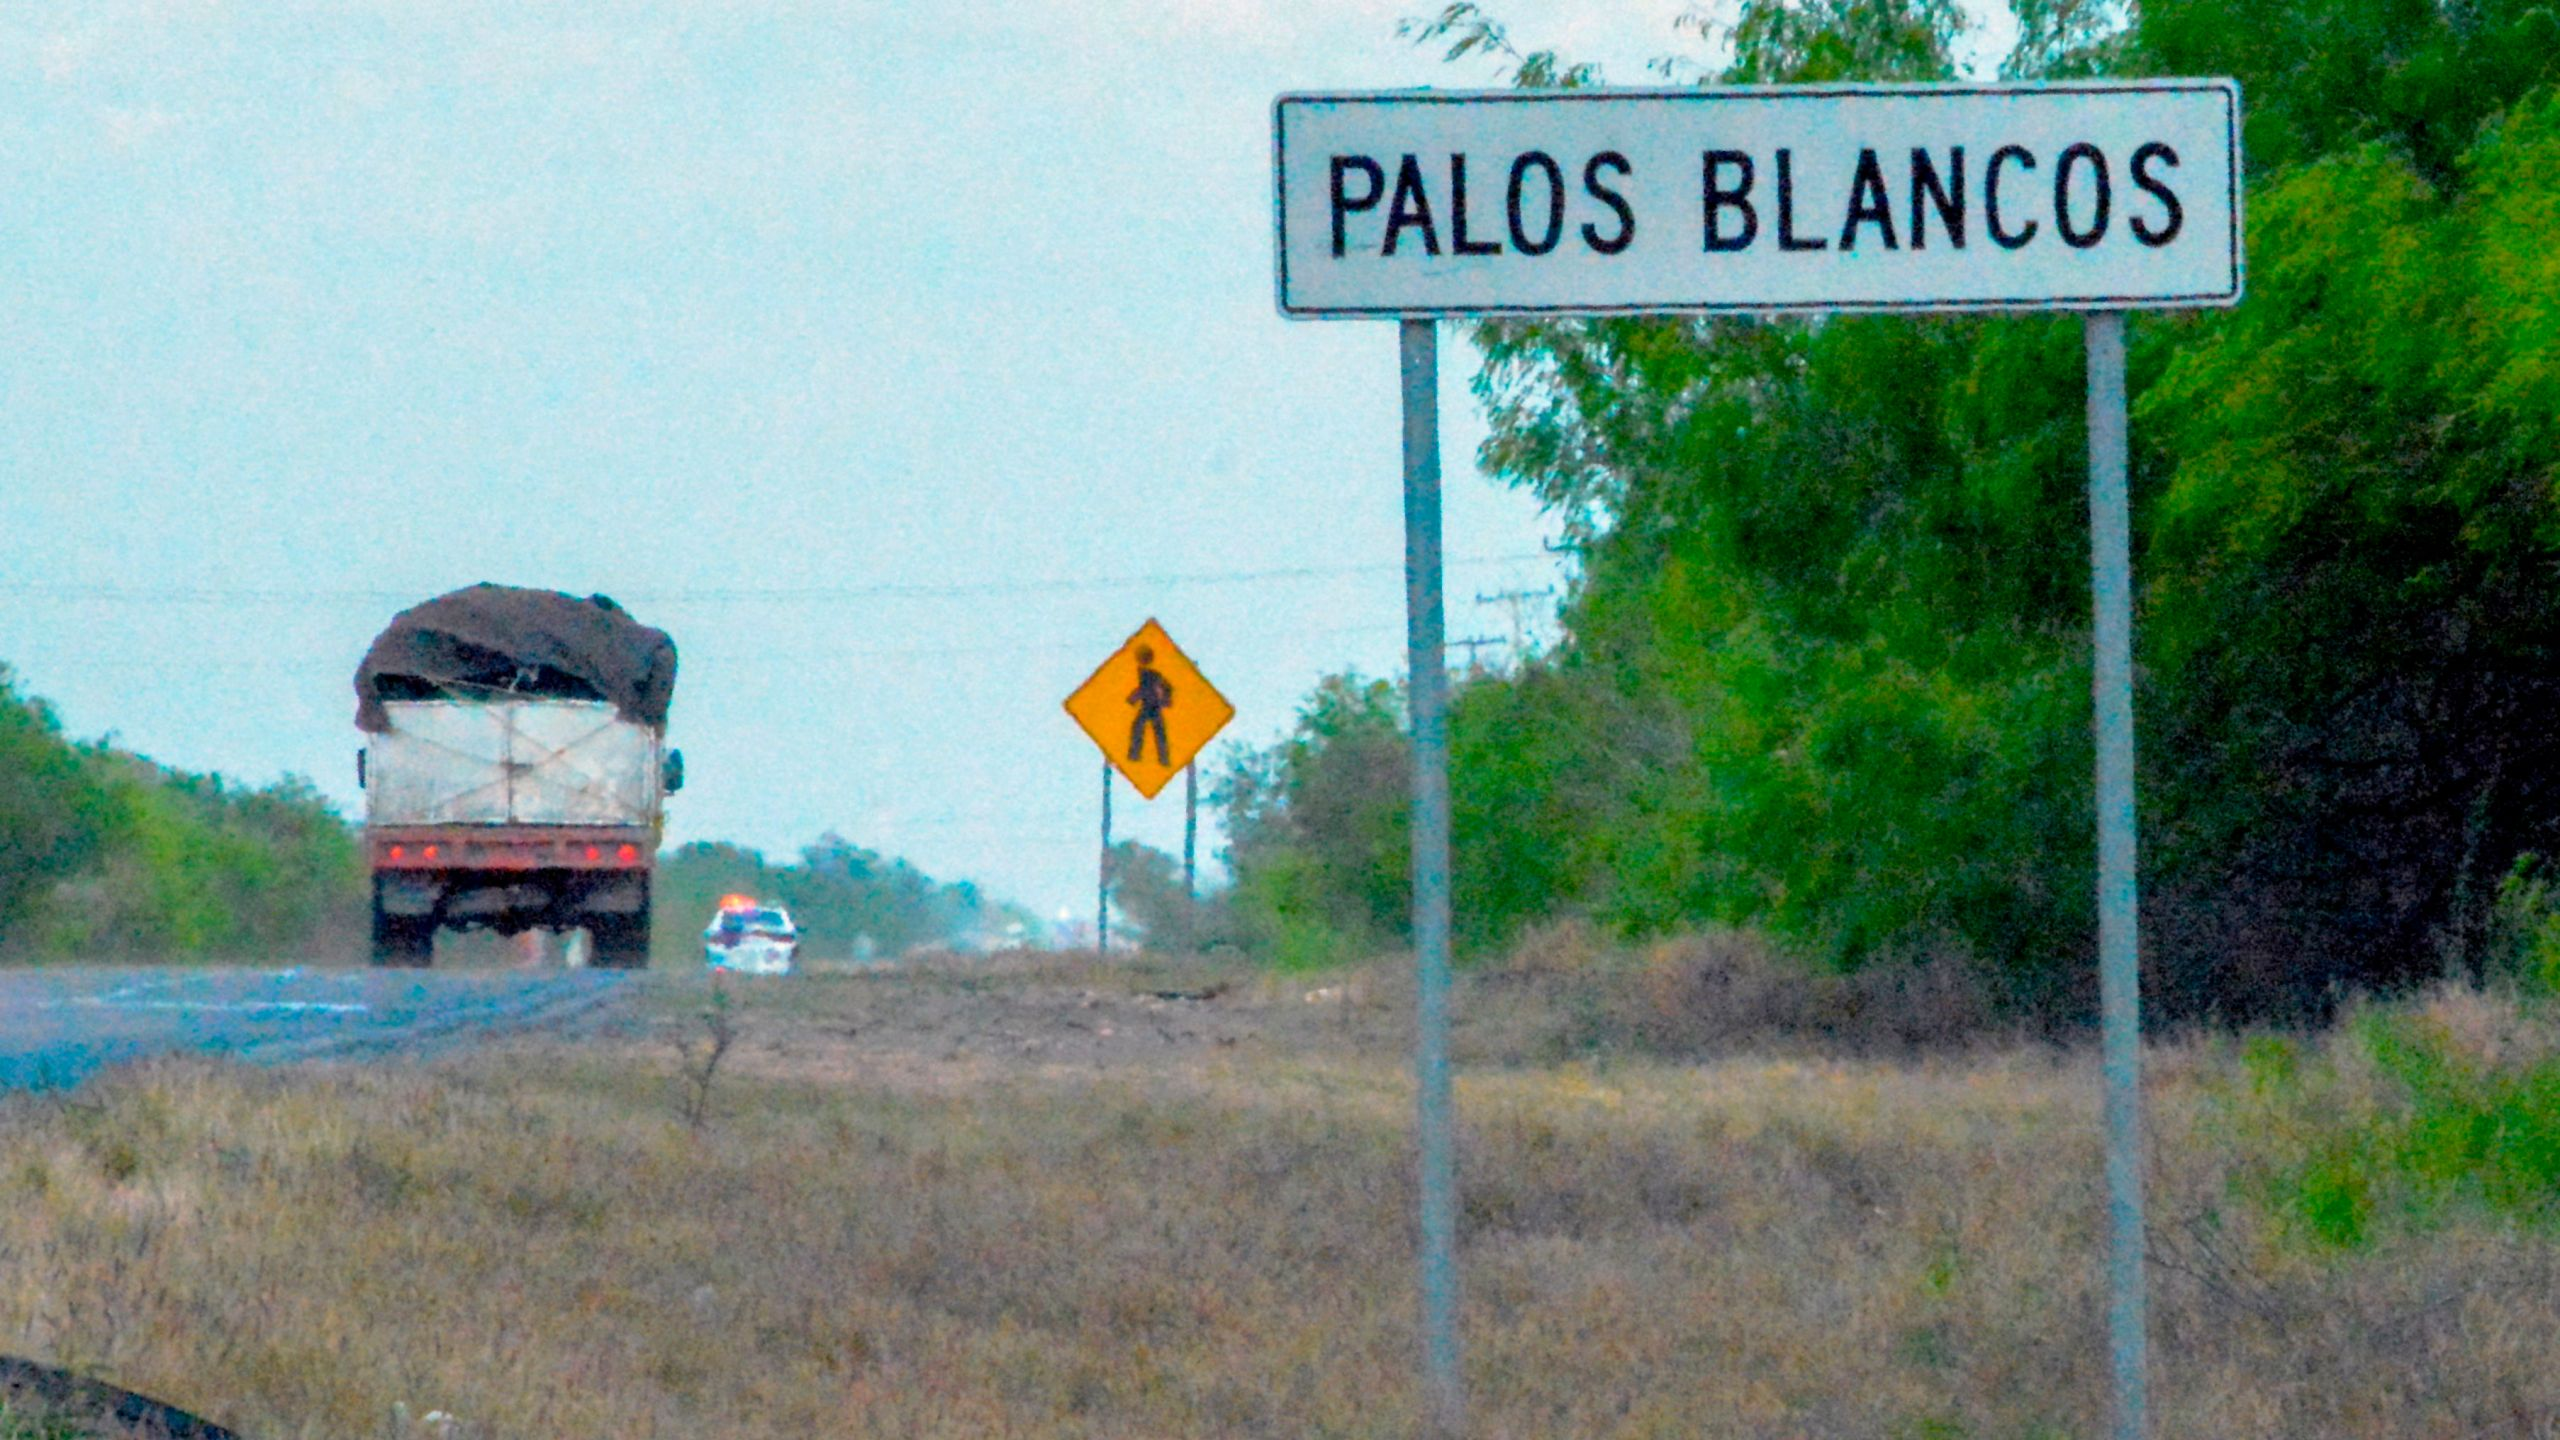 A truck drives past a sign on the Reynosa-San Fernando road in Palos Blancos in Tamaulipas state in northeasten Mexico, on March 12, 2019. (Credit: Jesus Gonzalez/AFP/Getty Images)